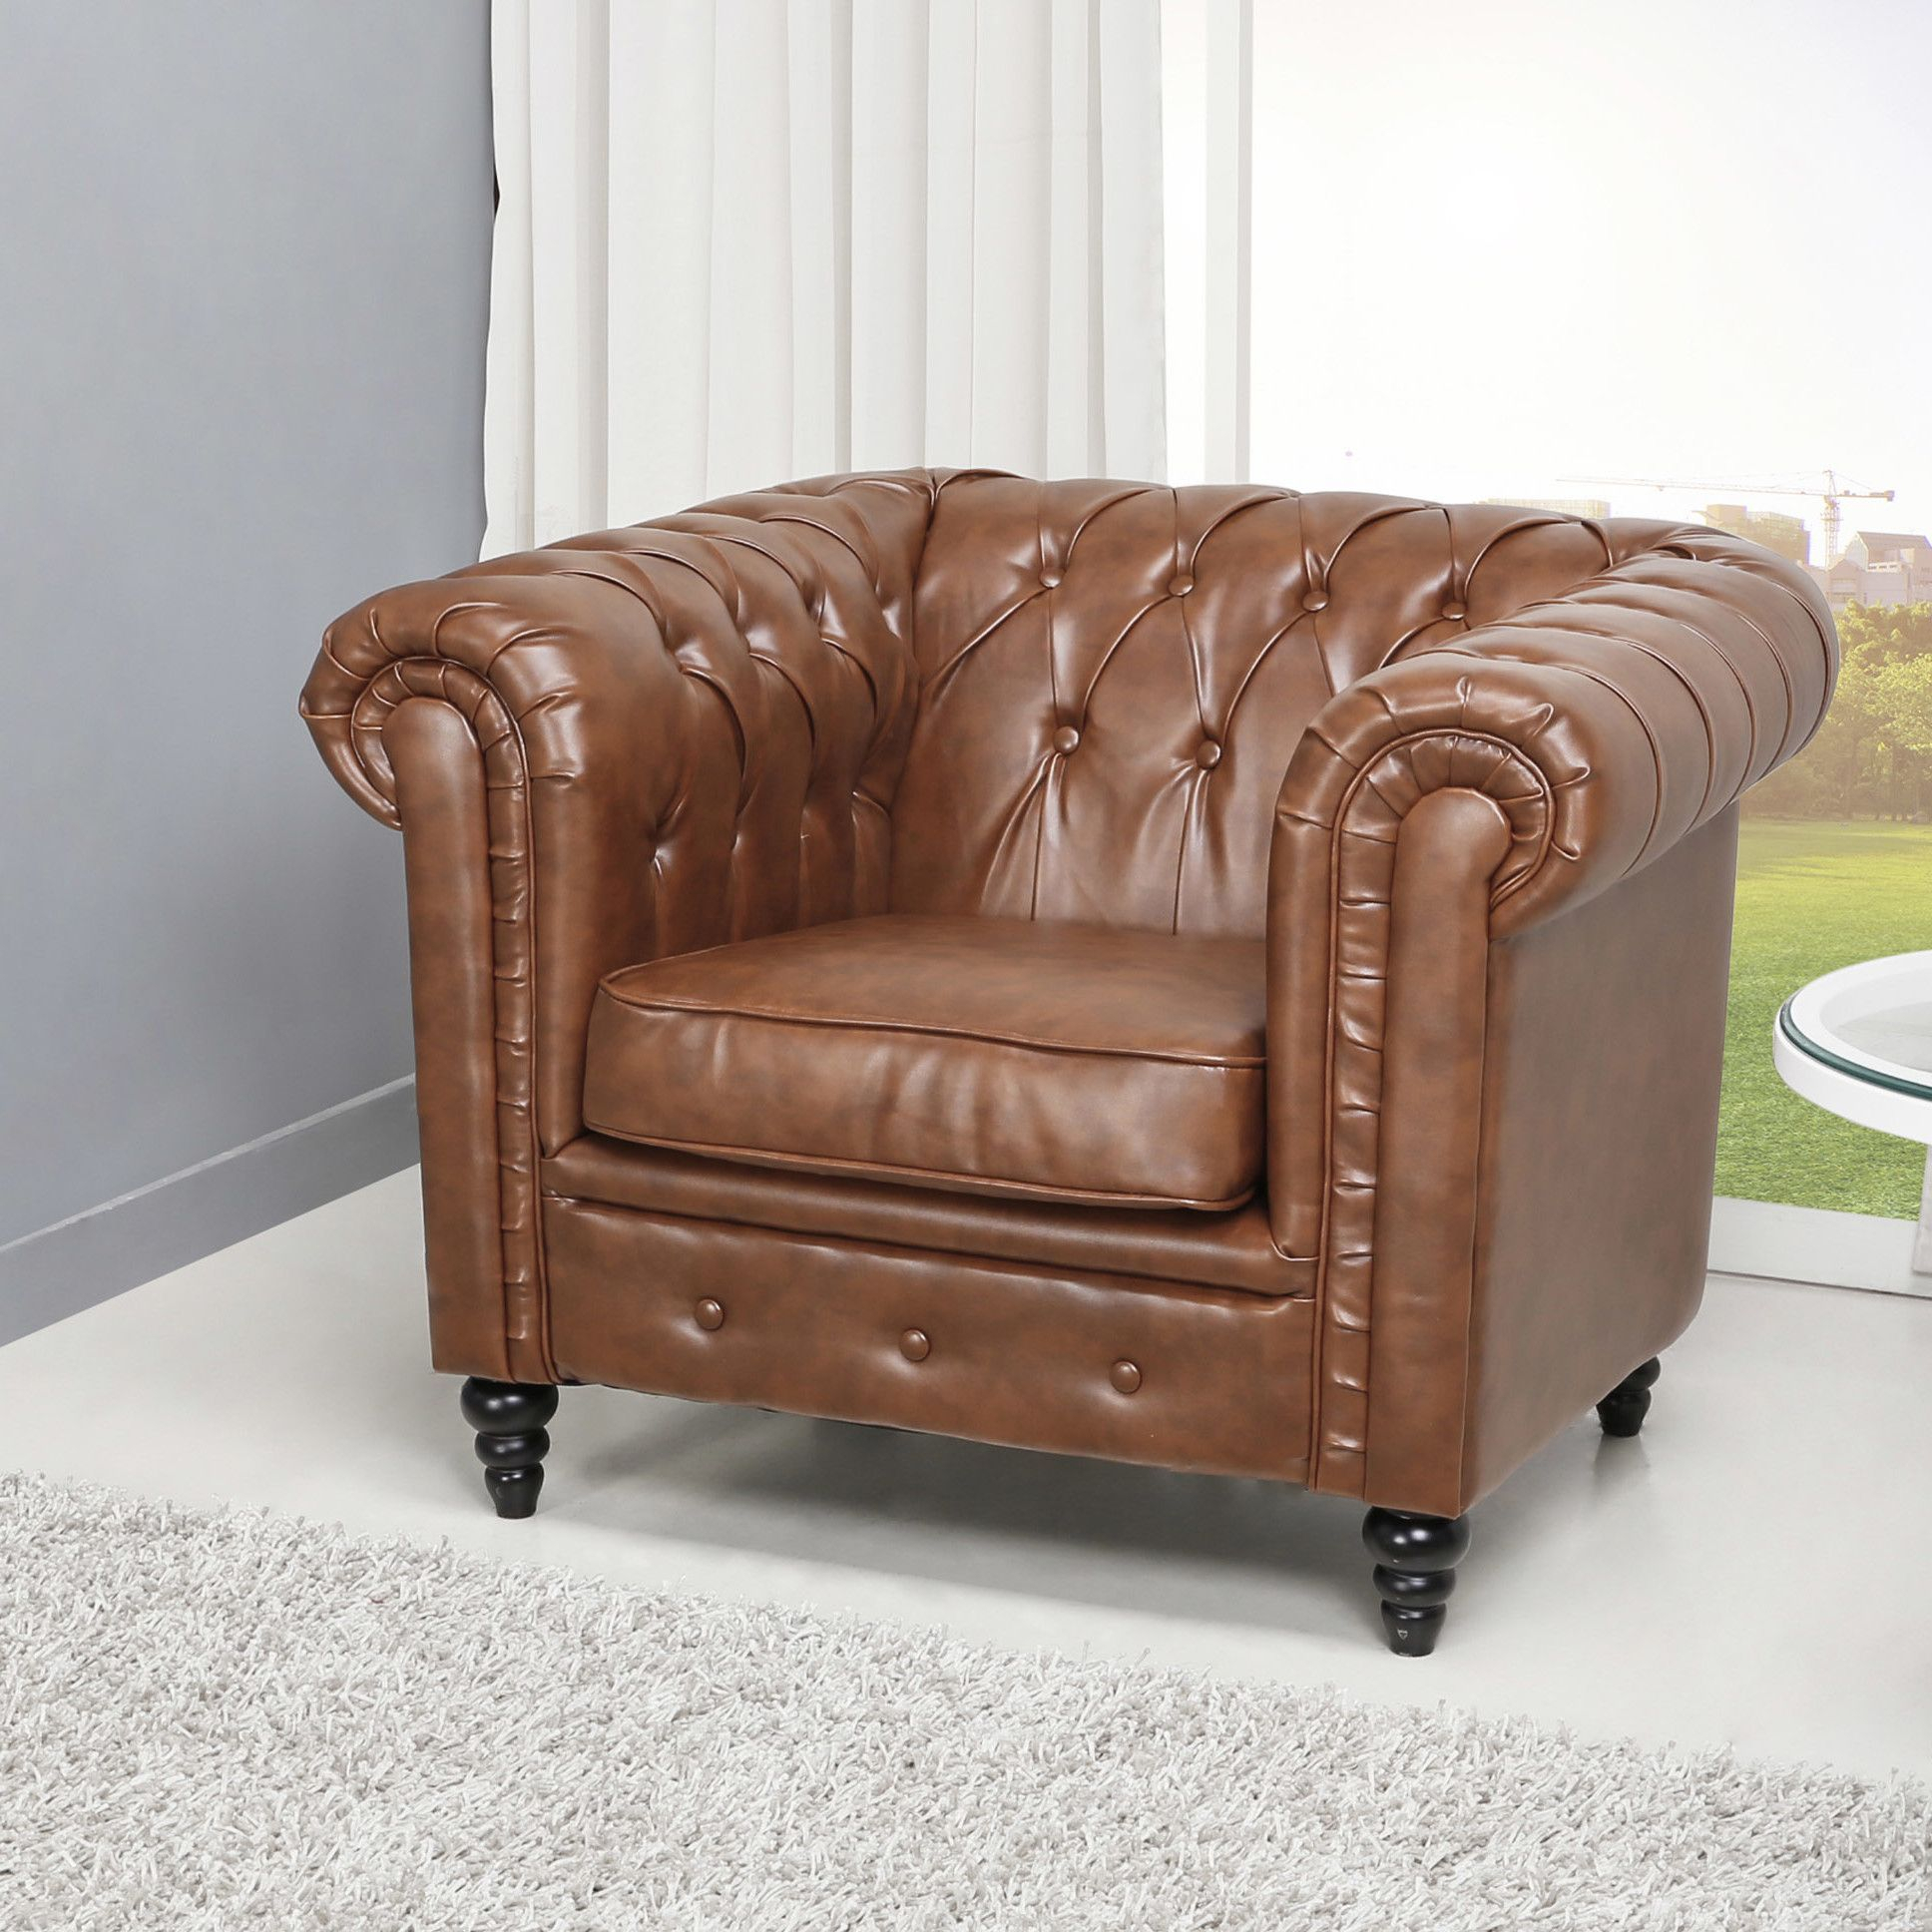 Wilmington Button Tufted Arm Chair | Products | Pinterest | Products In Twirl Swivel Accent Chairs (View 16 of 25)